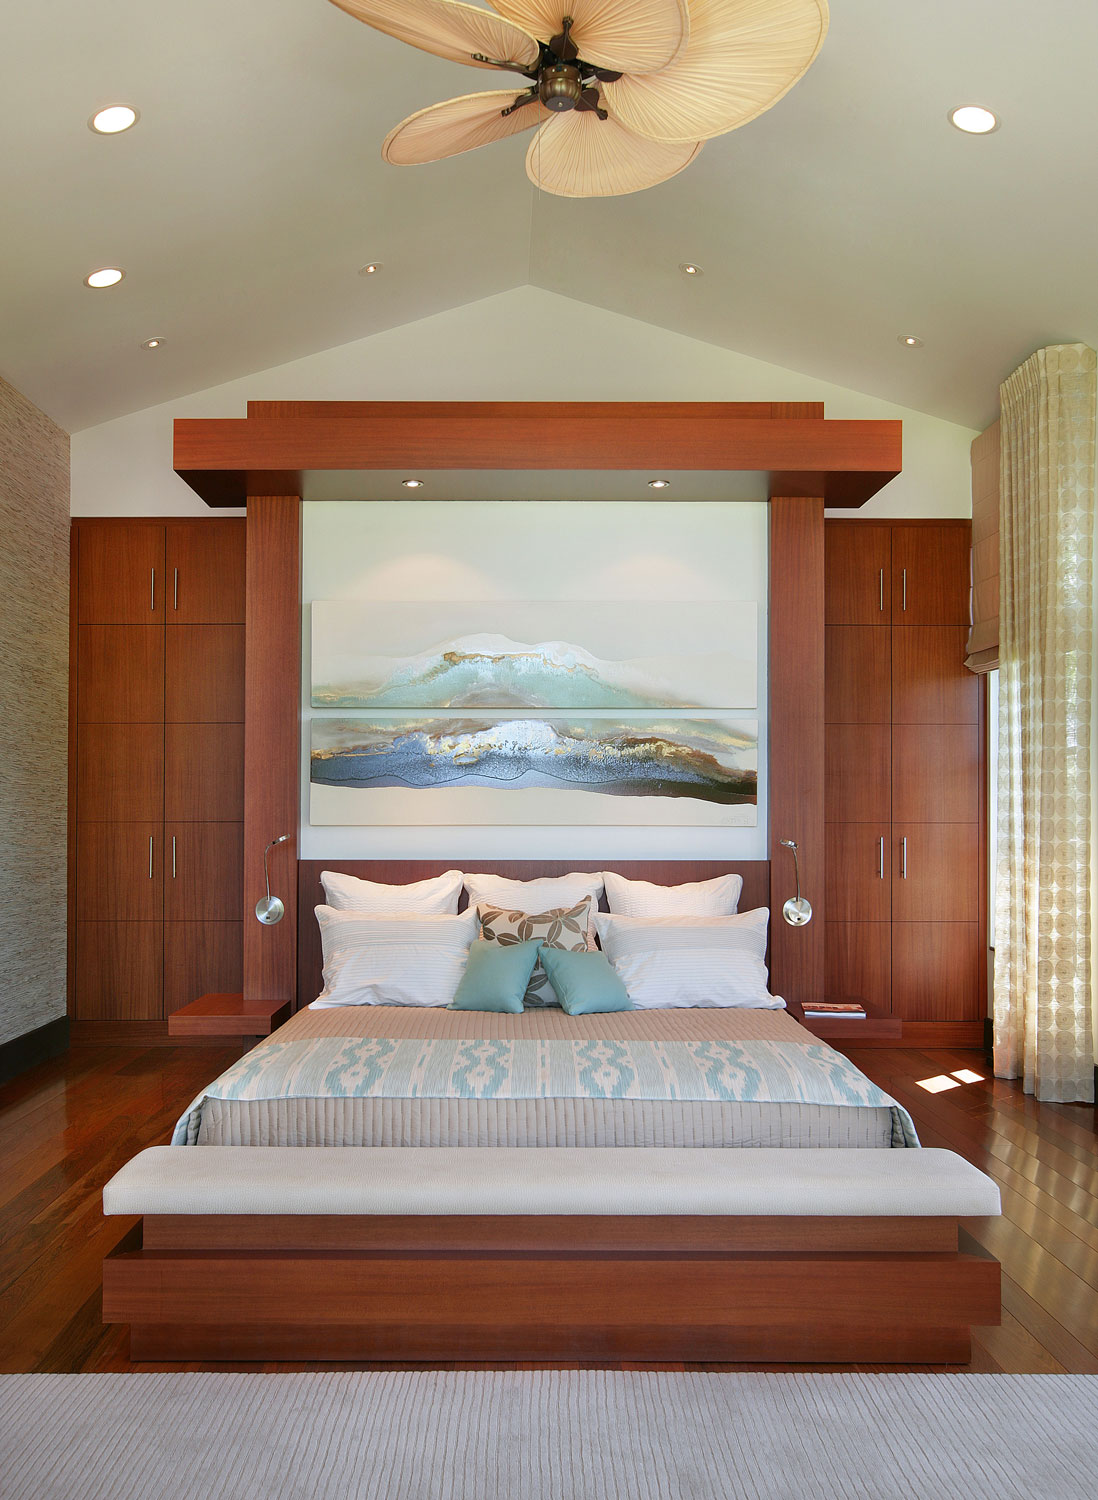 custom residential home interior bedroom